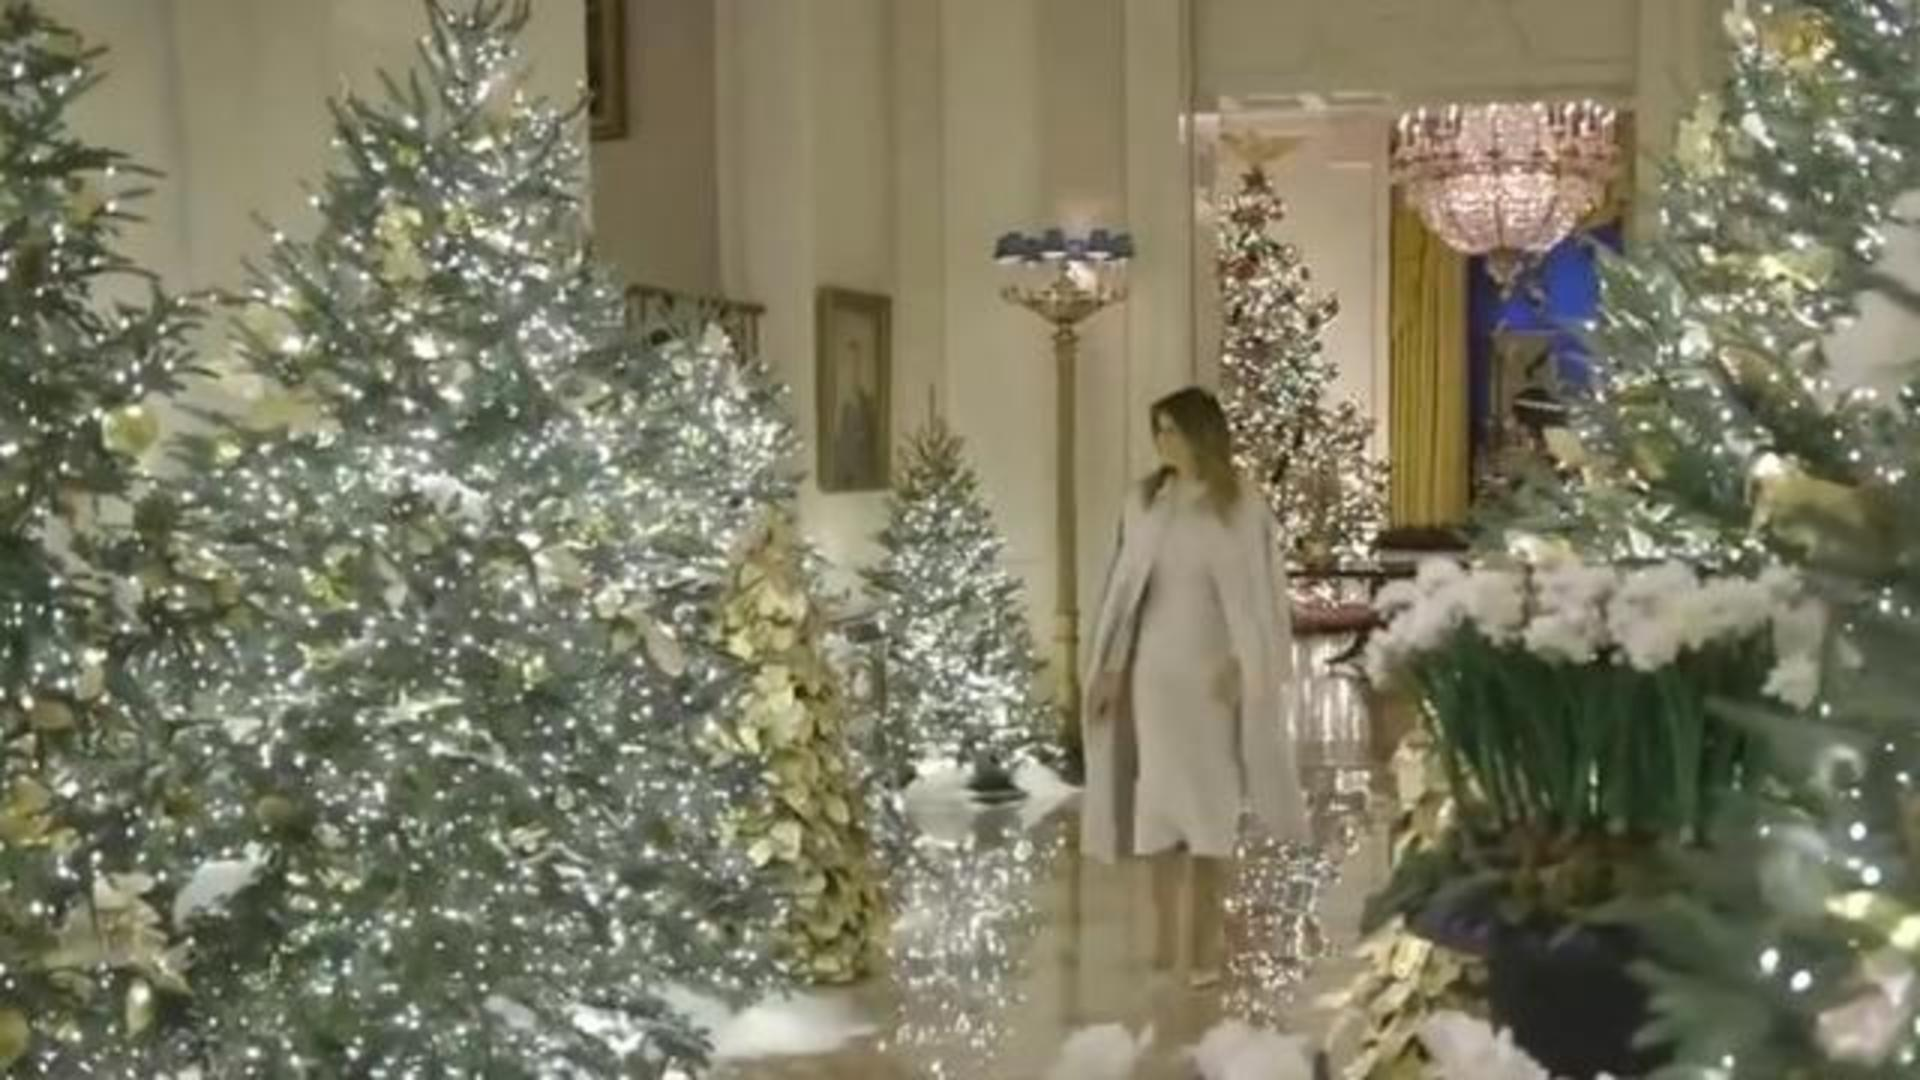 Whitehouse Christmas Decor 2021 First Lady Melania Trump Reveals Christmas Decorations At The White House Cbs News